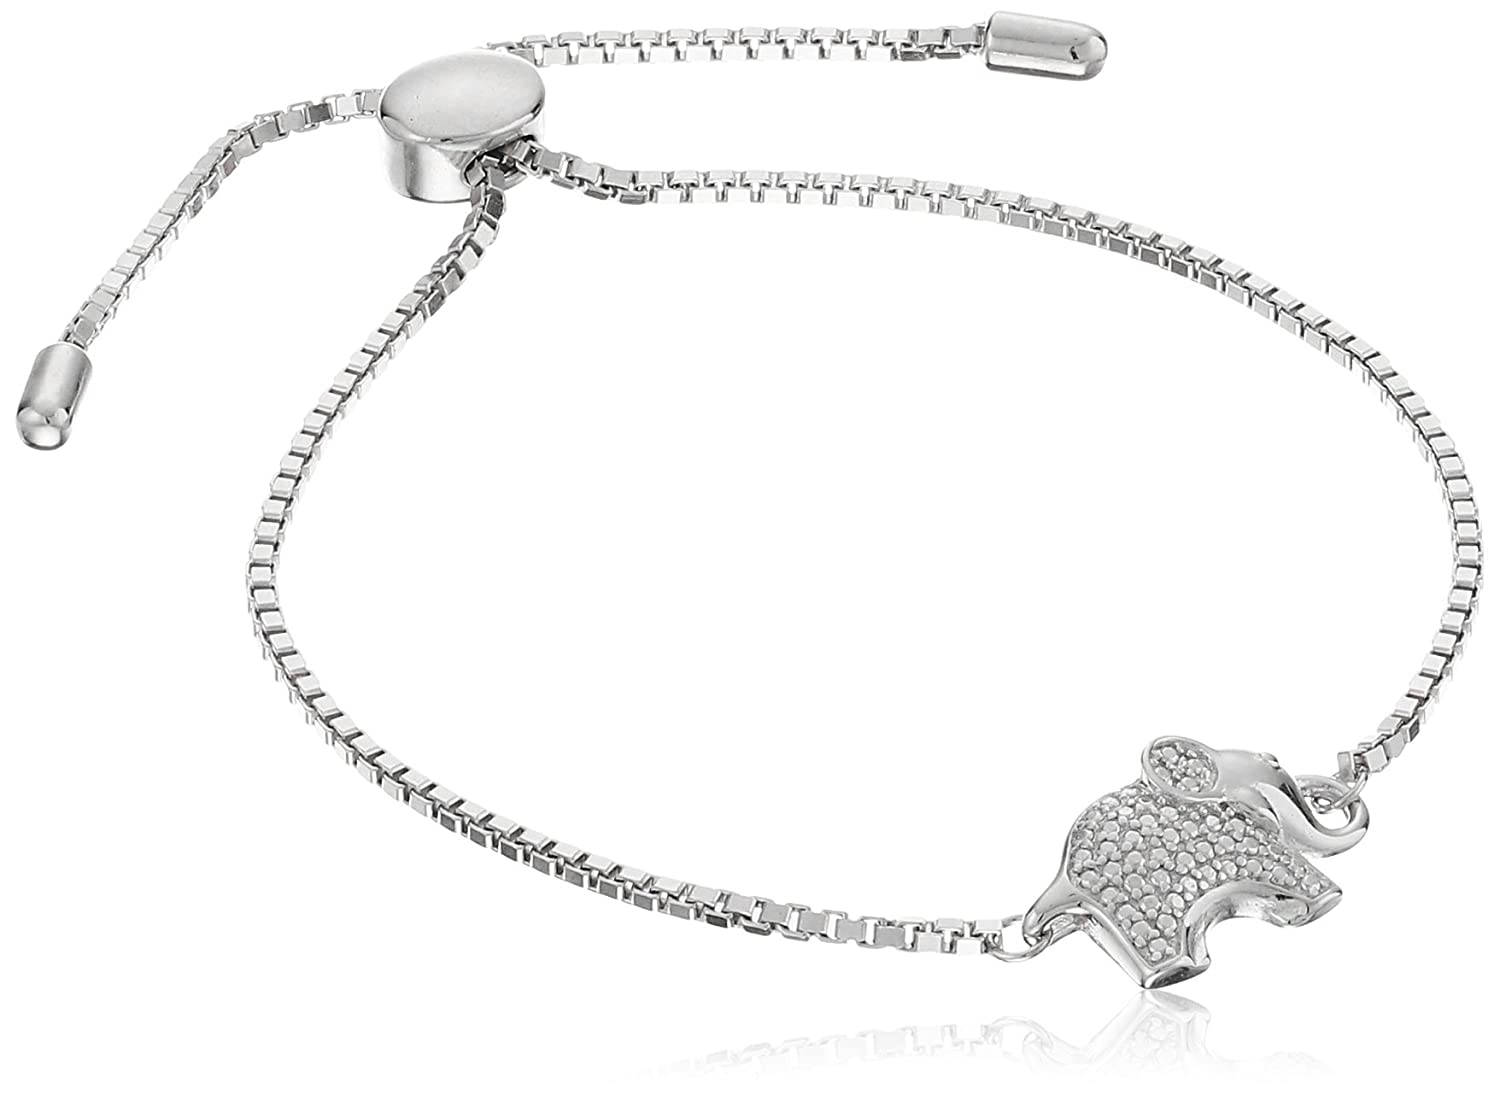 Rhodium Plated Sterling Silver Elephant Bolo Adjustable Bracelet Amazon Collection R1A6FGA0F8